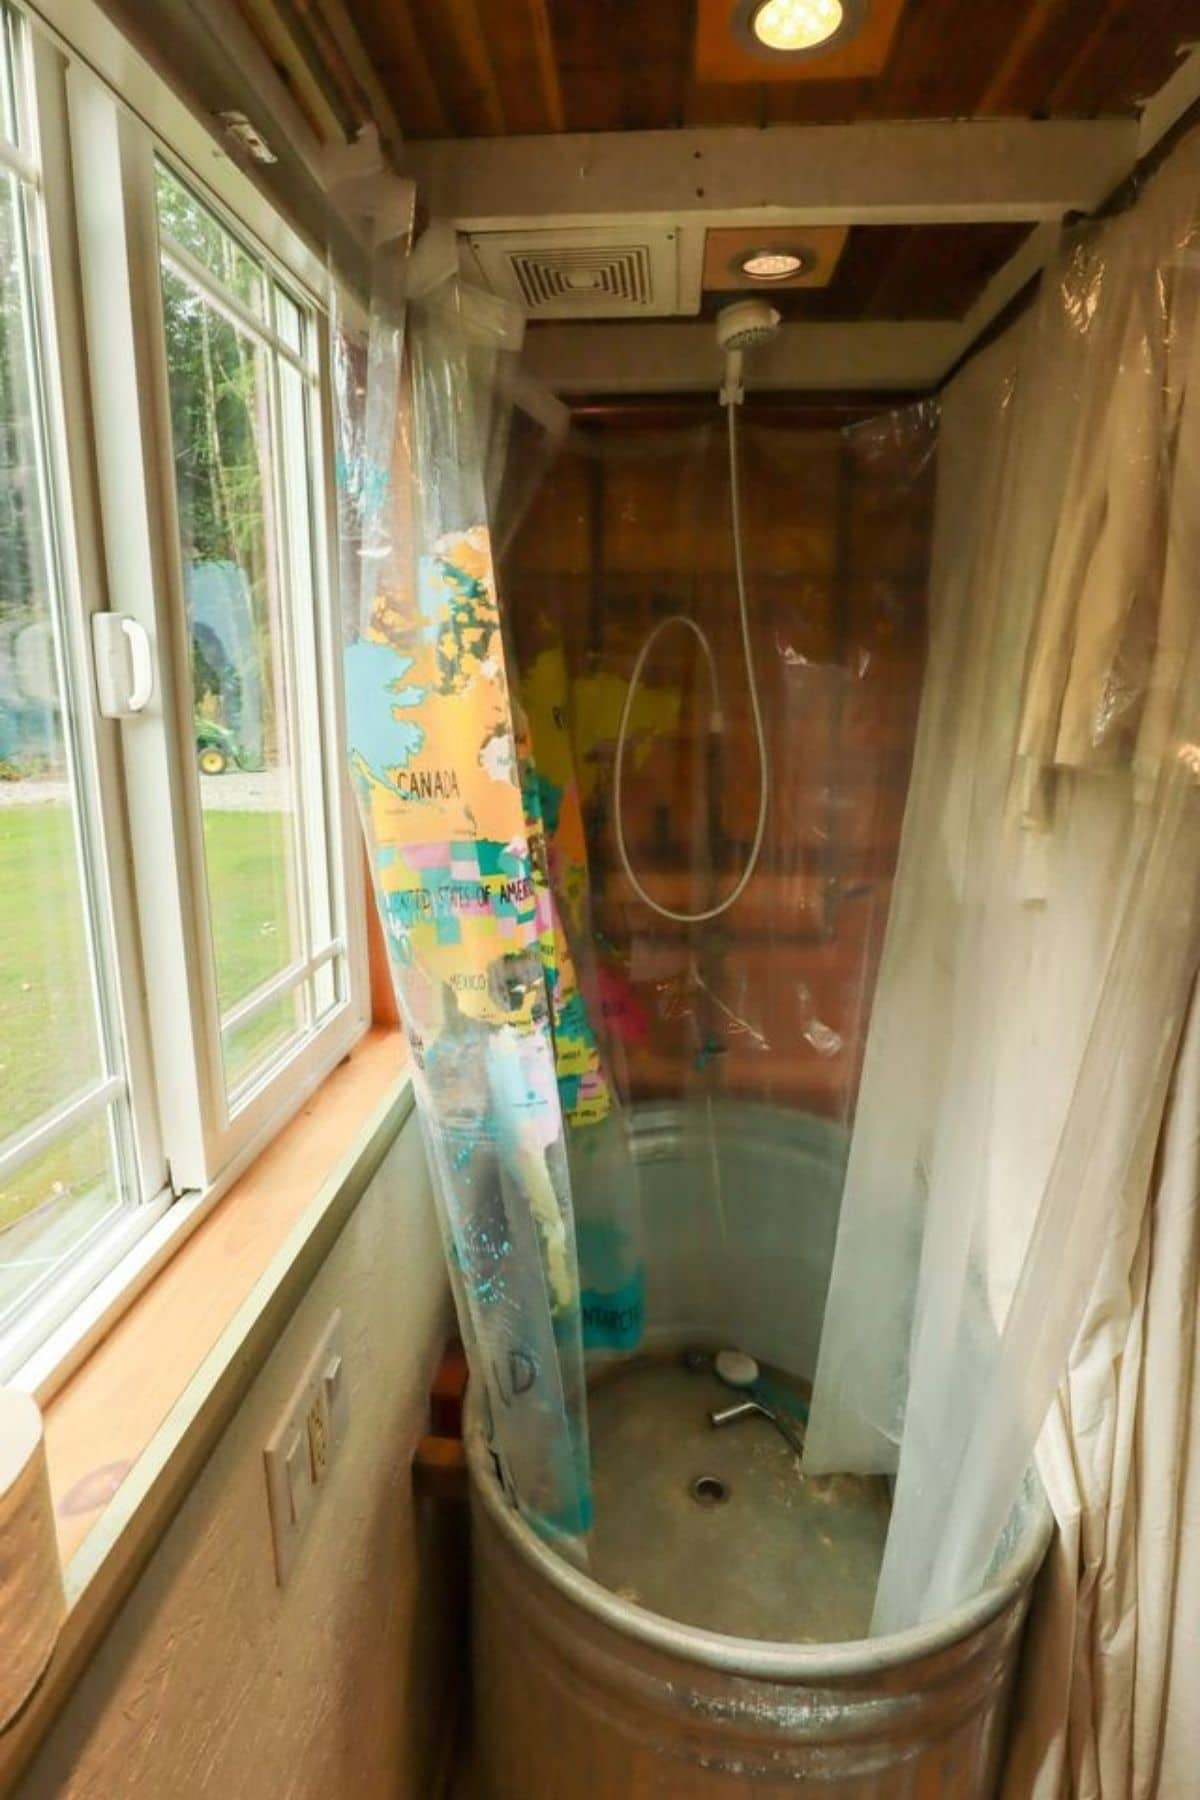 Galvanized tub shower with clear floral shower curtain